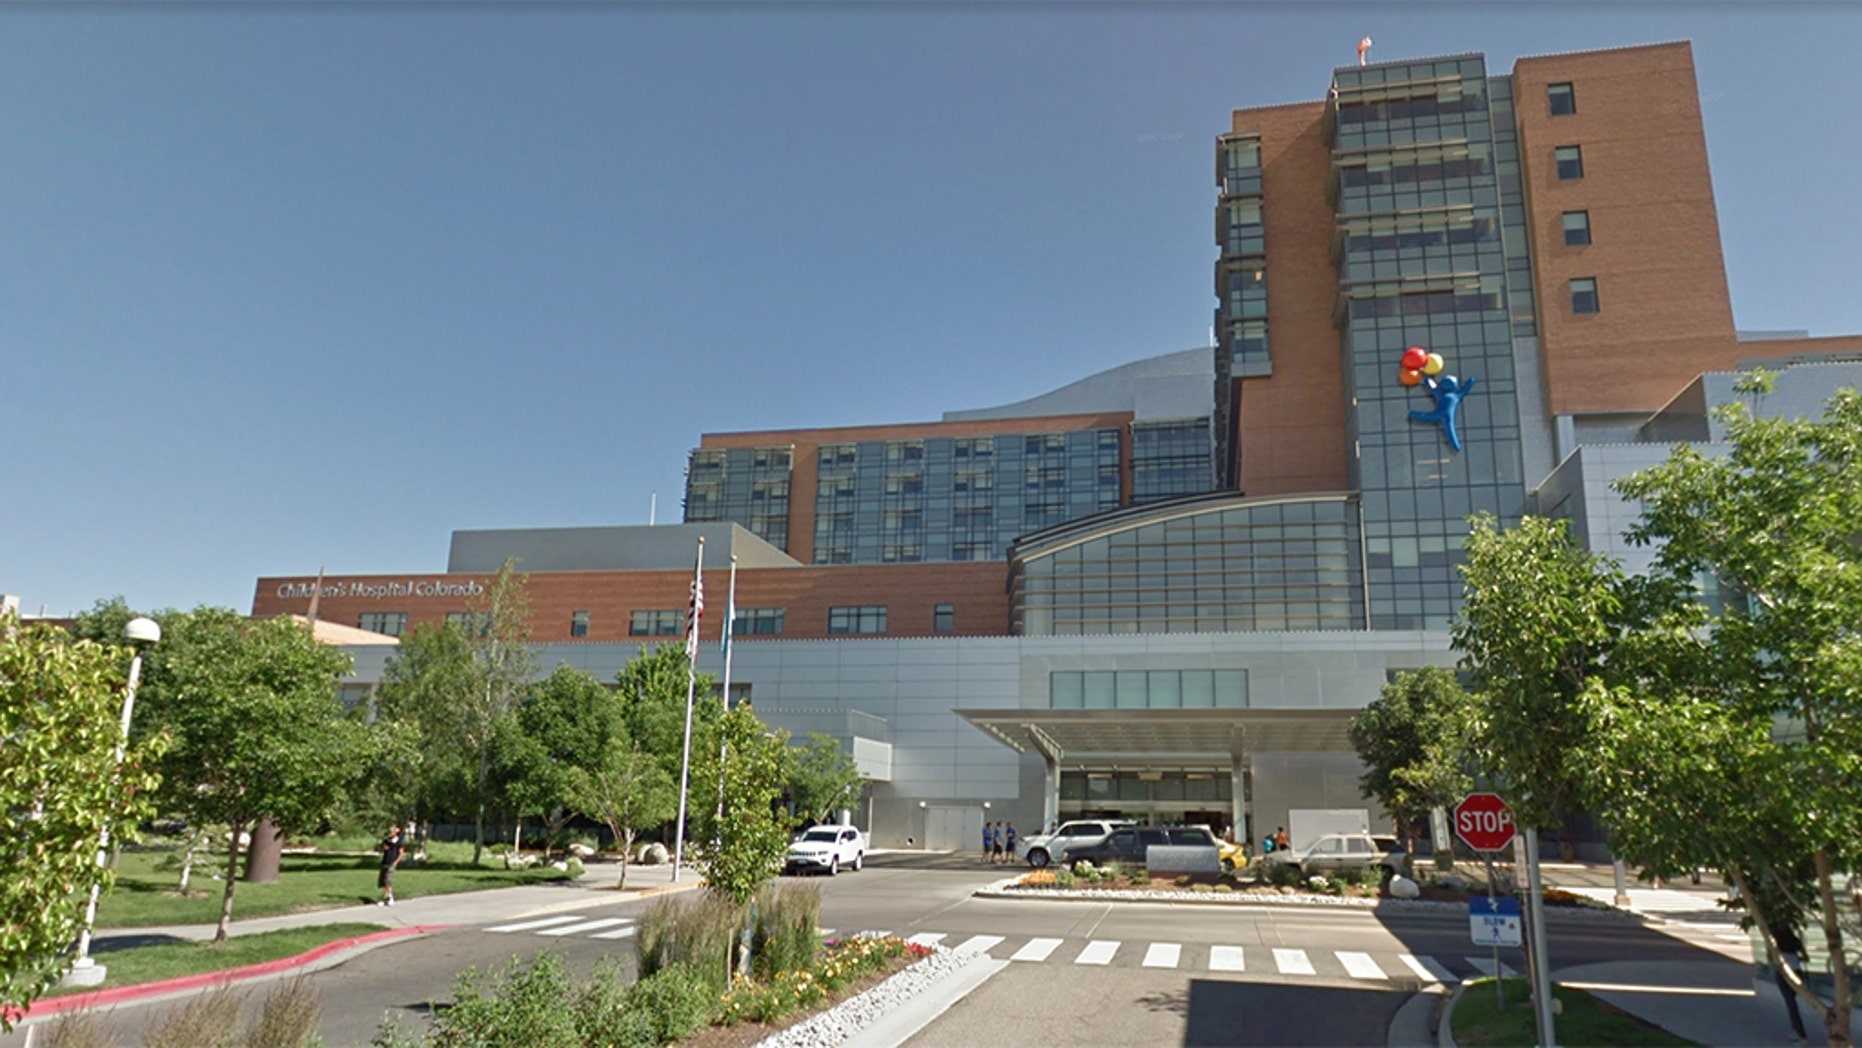 Gender markers on the wristbands of patients of The Children's Hospital of Colorado have been removed.